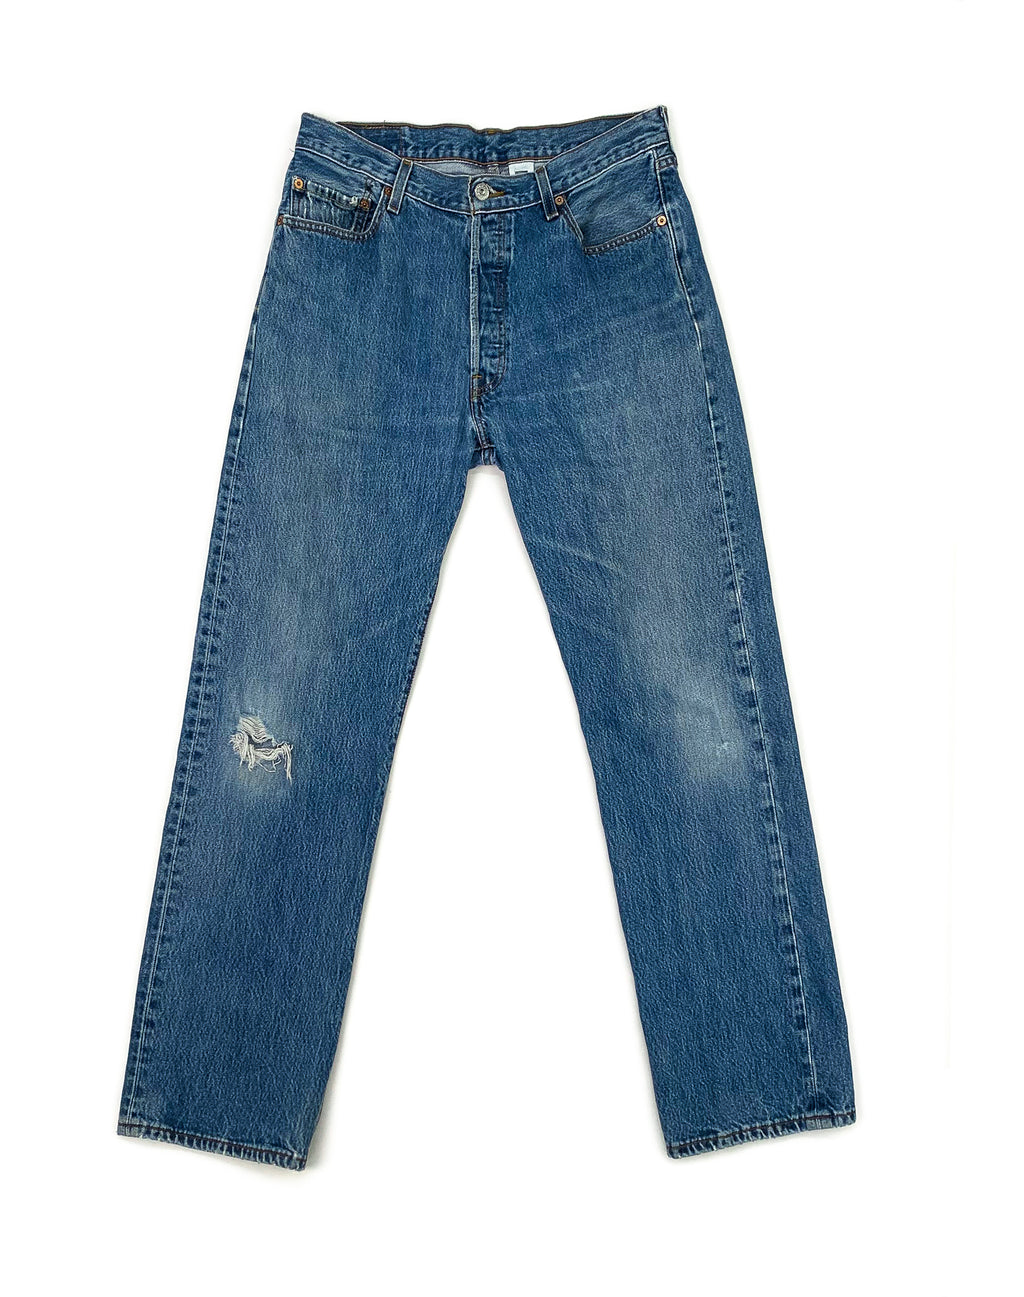 LEVI'S 501 LIGHT WASH DENIM JEANS